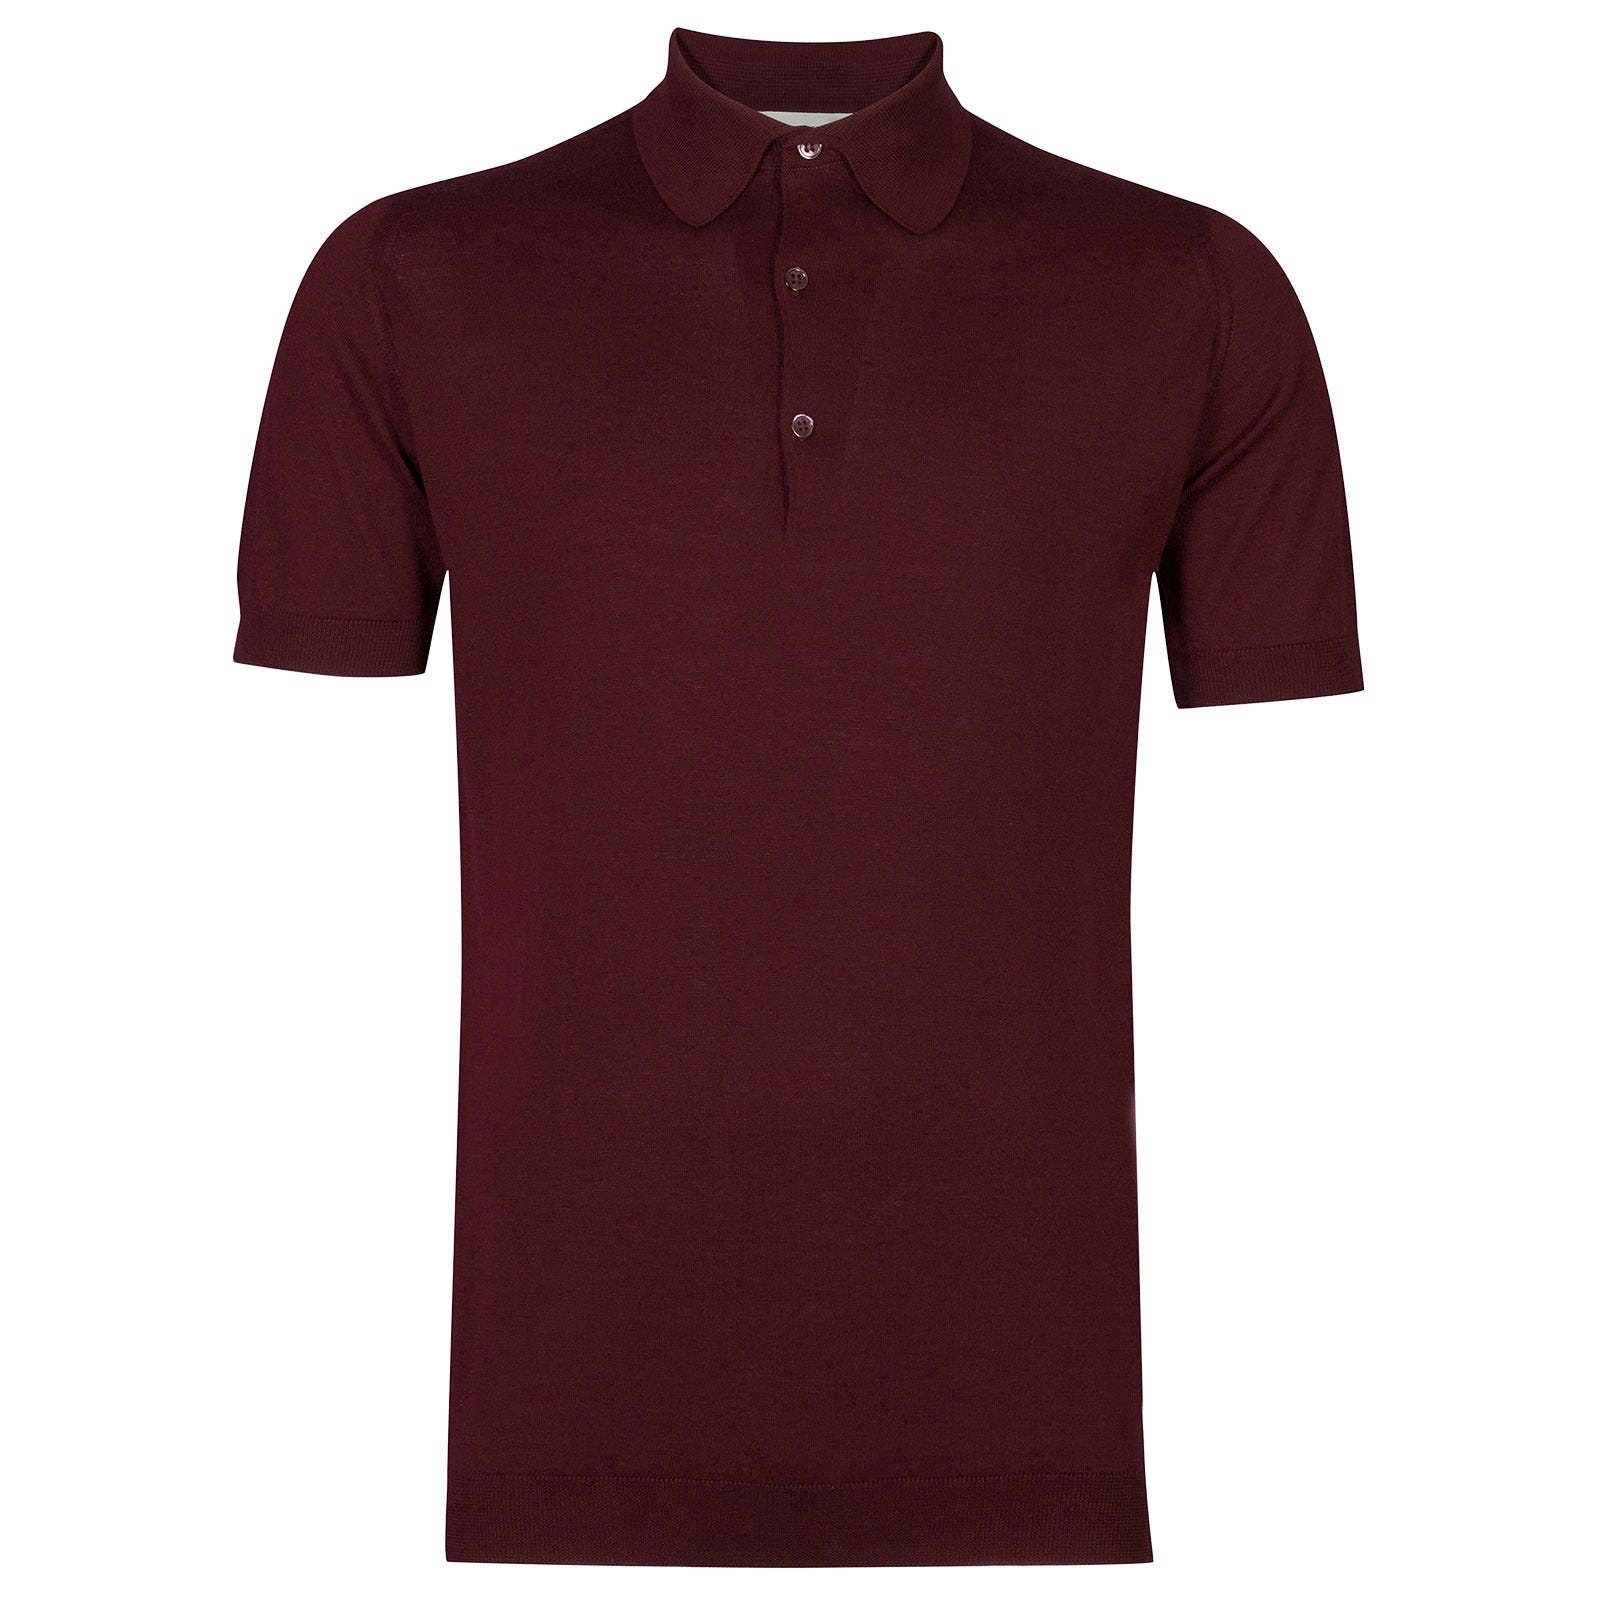 John Smedley Adrian Sea Island Cotton Shirt in Bordeaux-XXL